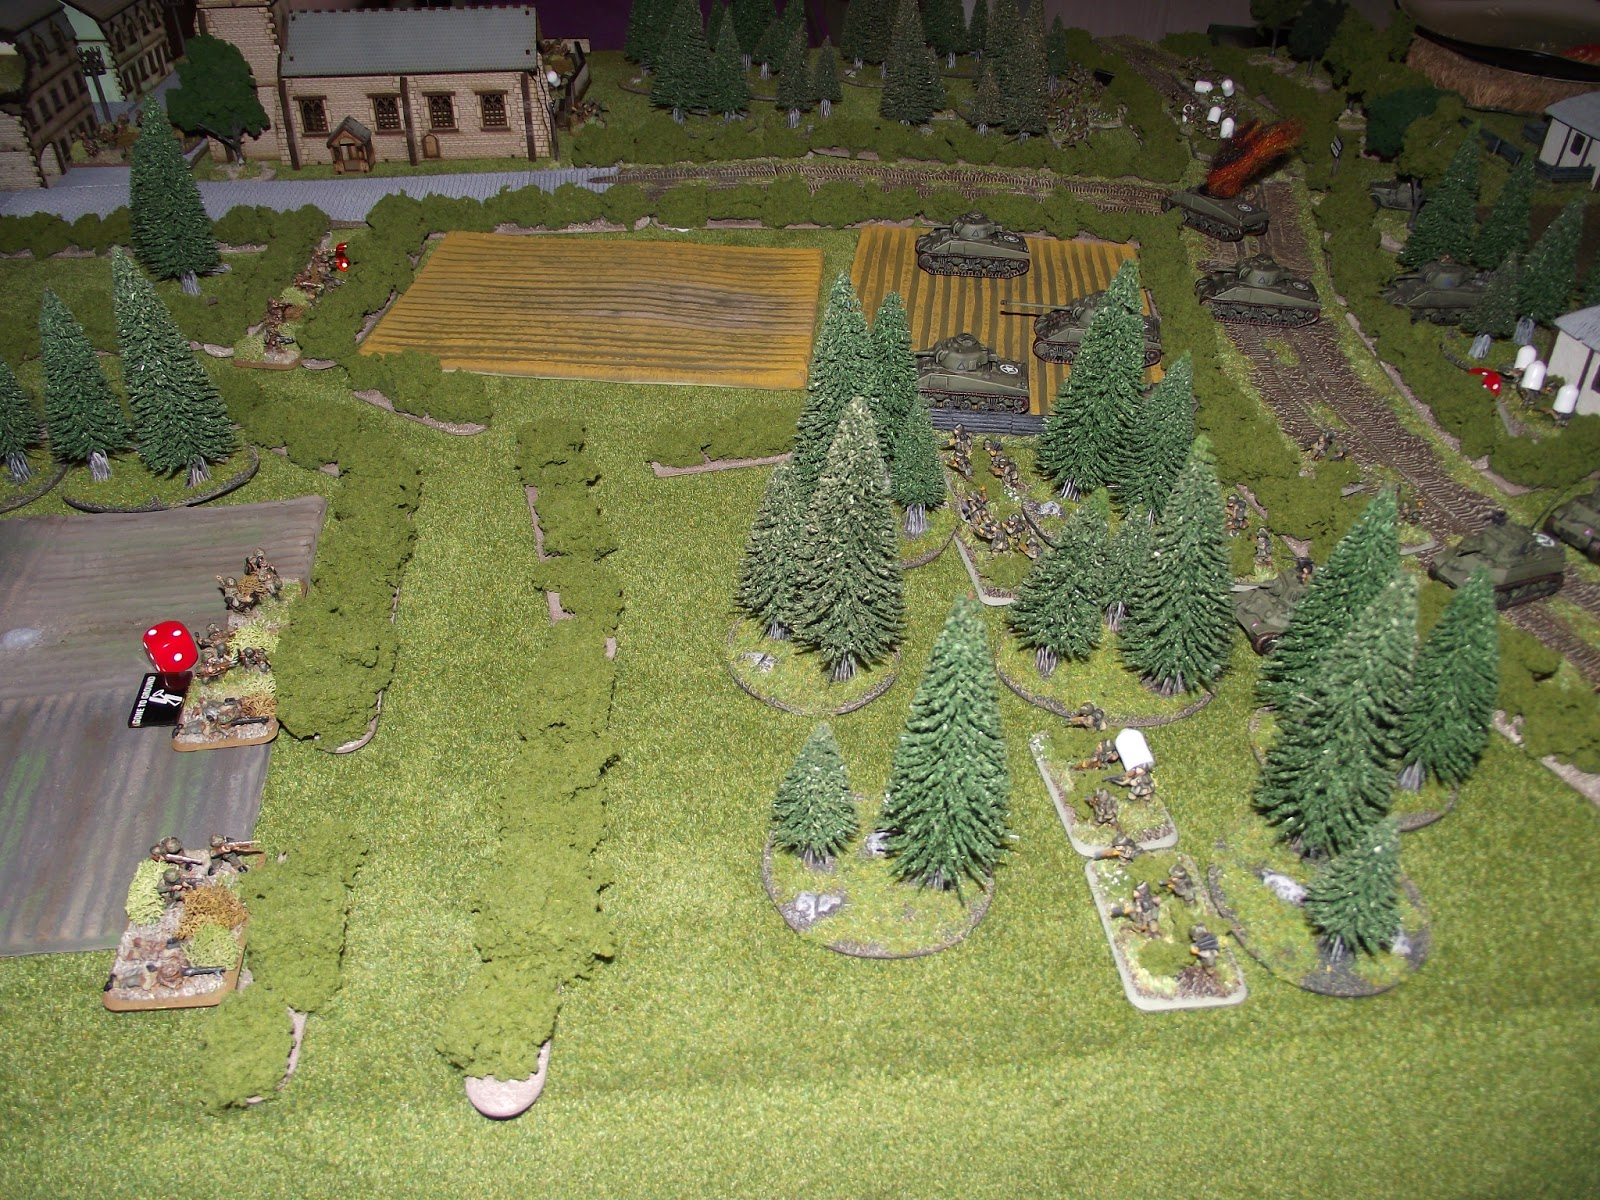 Onthe other flank, but Germans are looking a bit thin.... not going well here, as the British keep moving up.